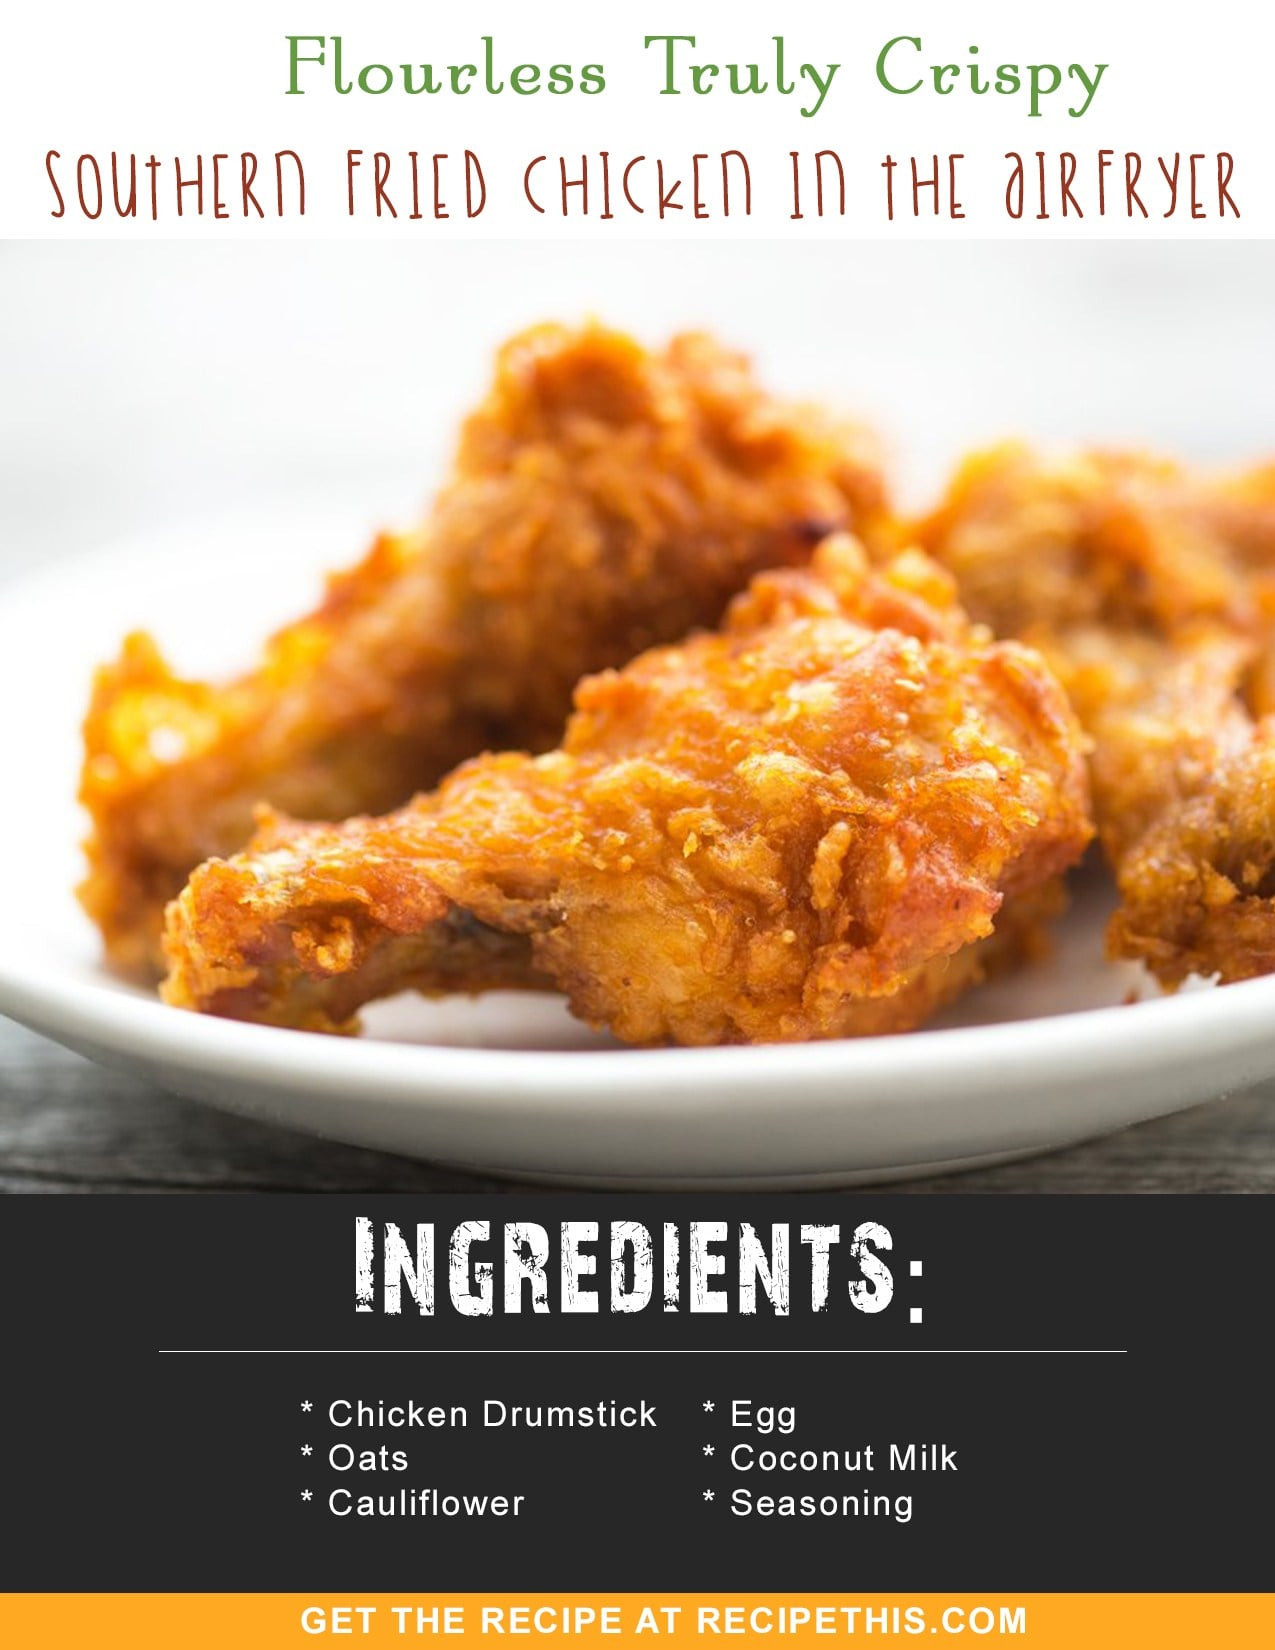 Air Fryer Recipes Fried Chicken  Flourless Truly Crispy Southern Fried Chicken In The Air